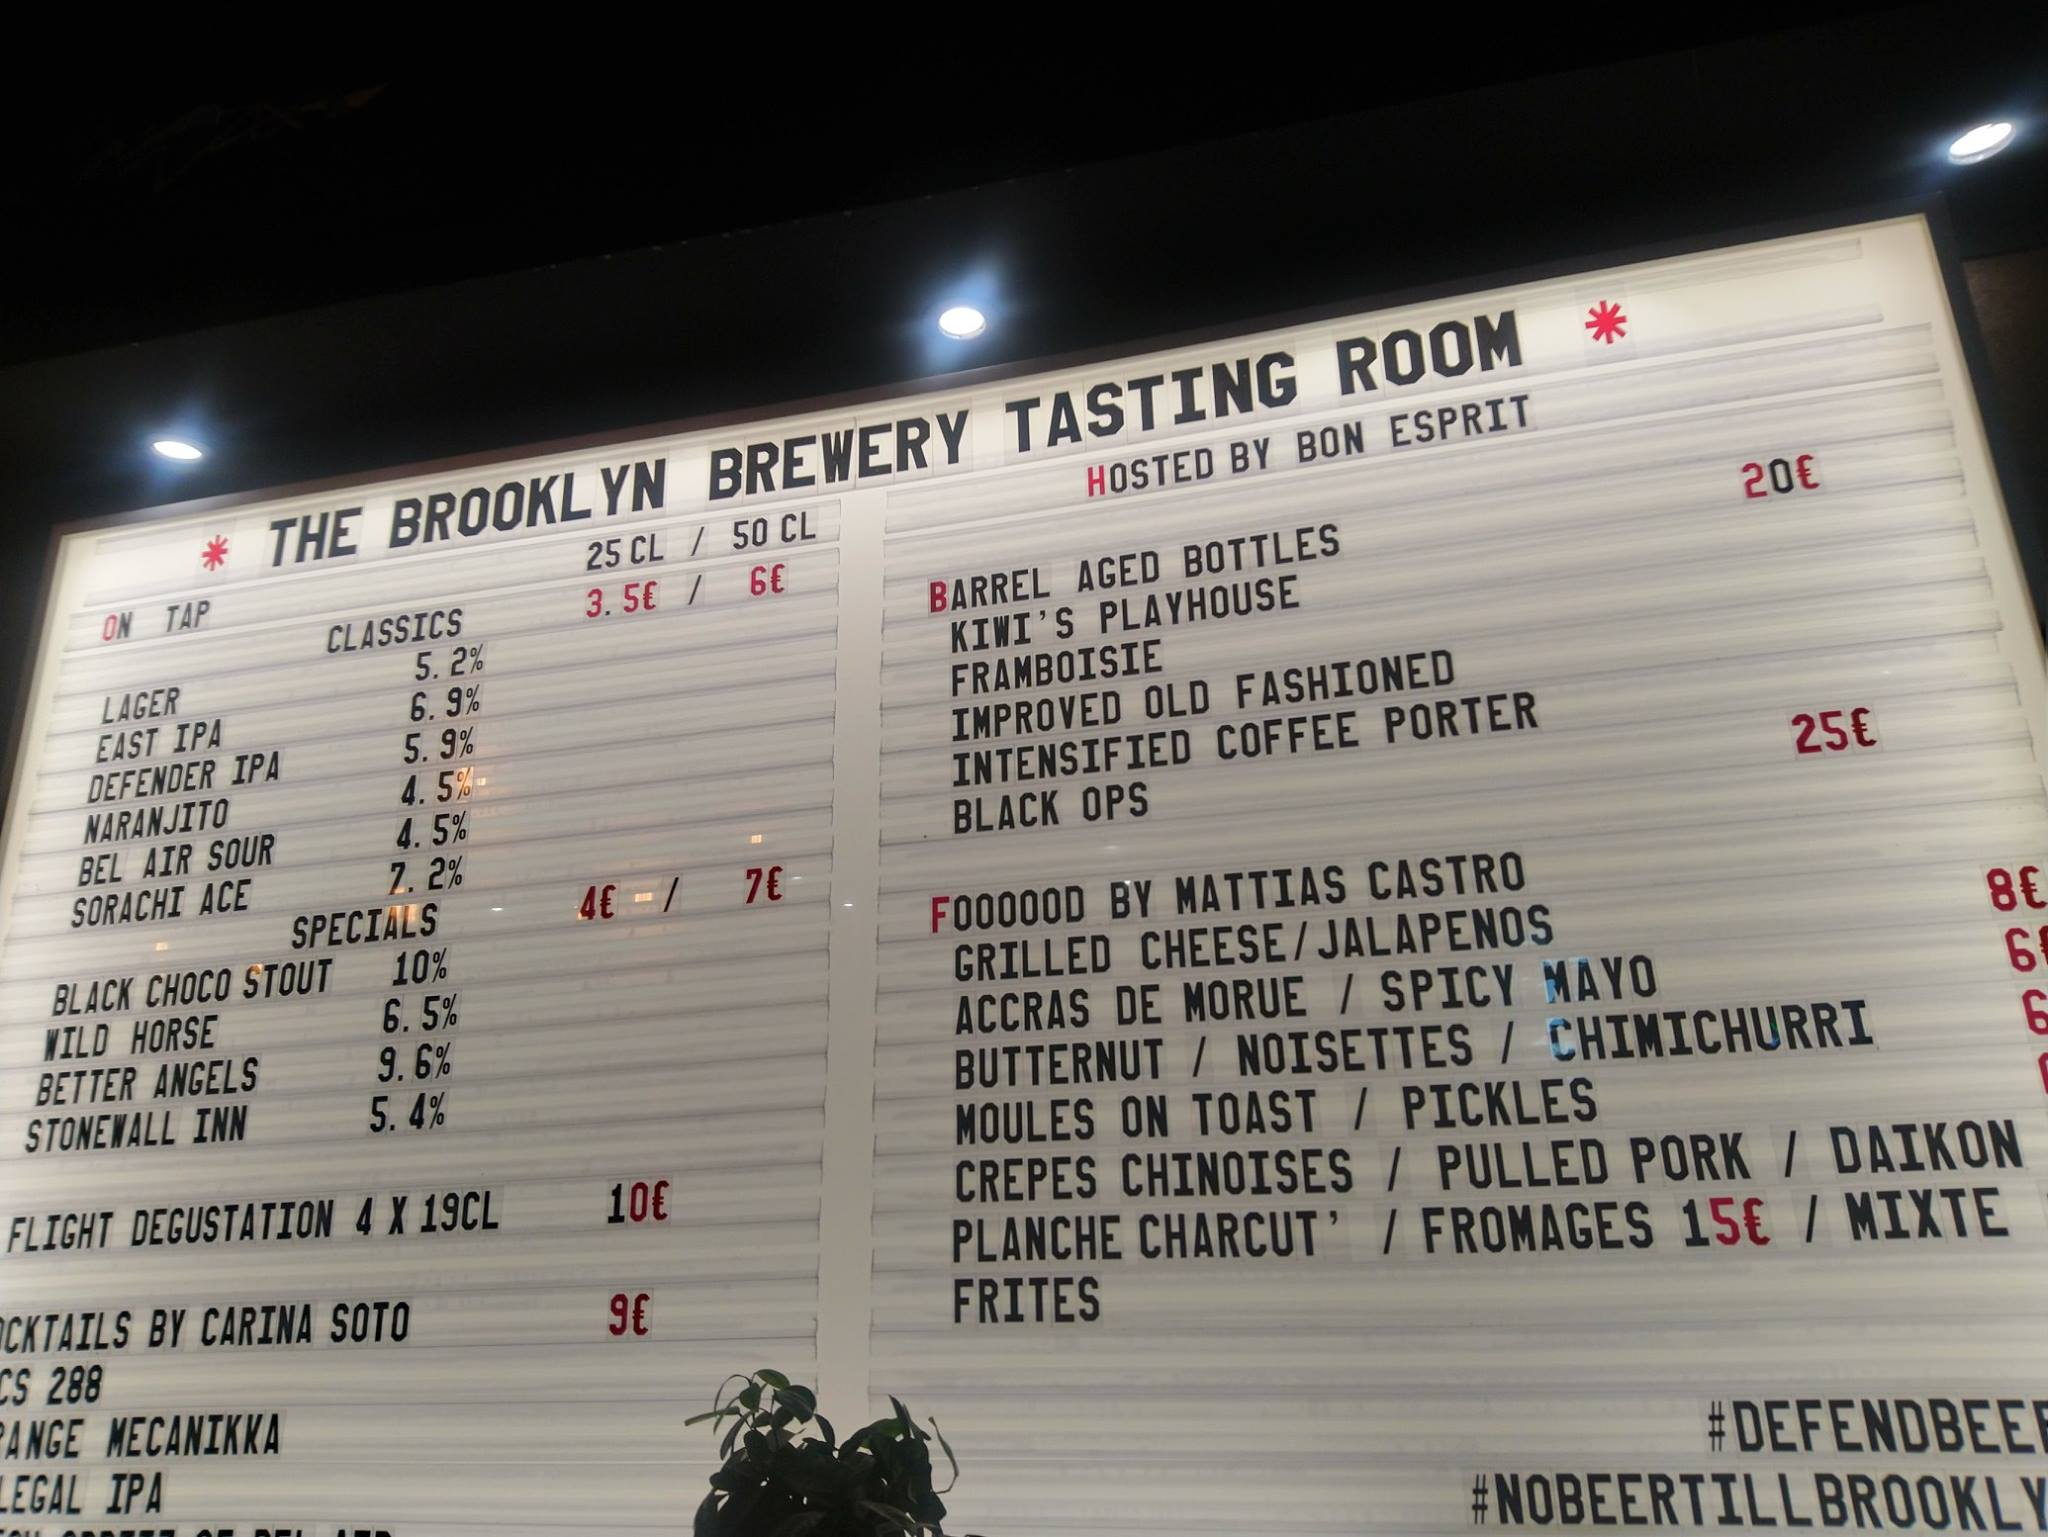 Brooklyn Brewery - Tasting Room Paris